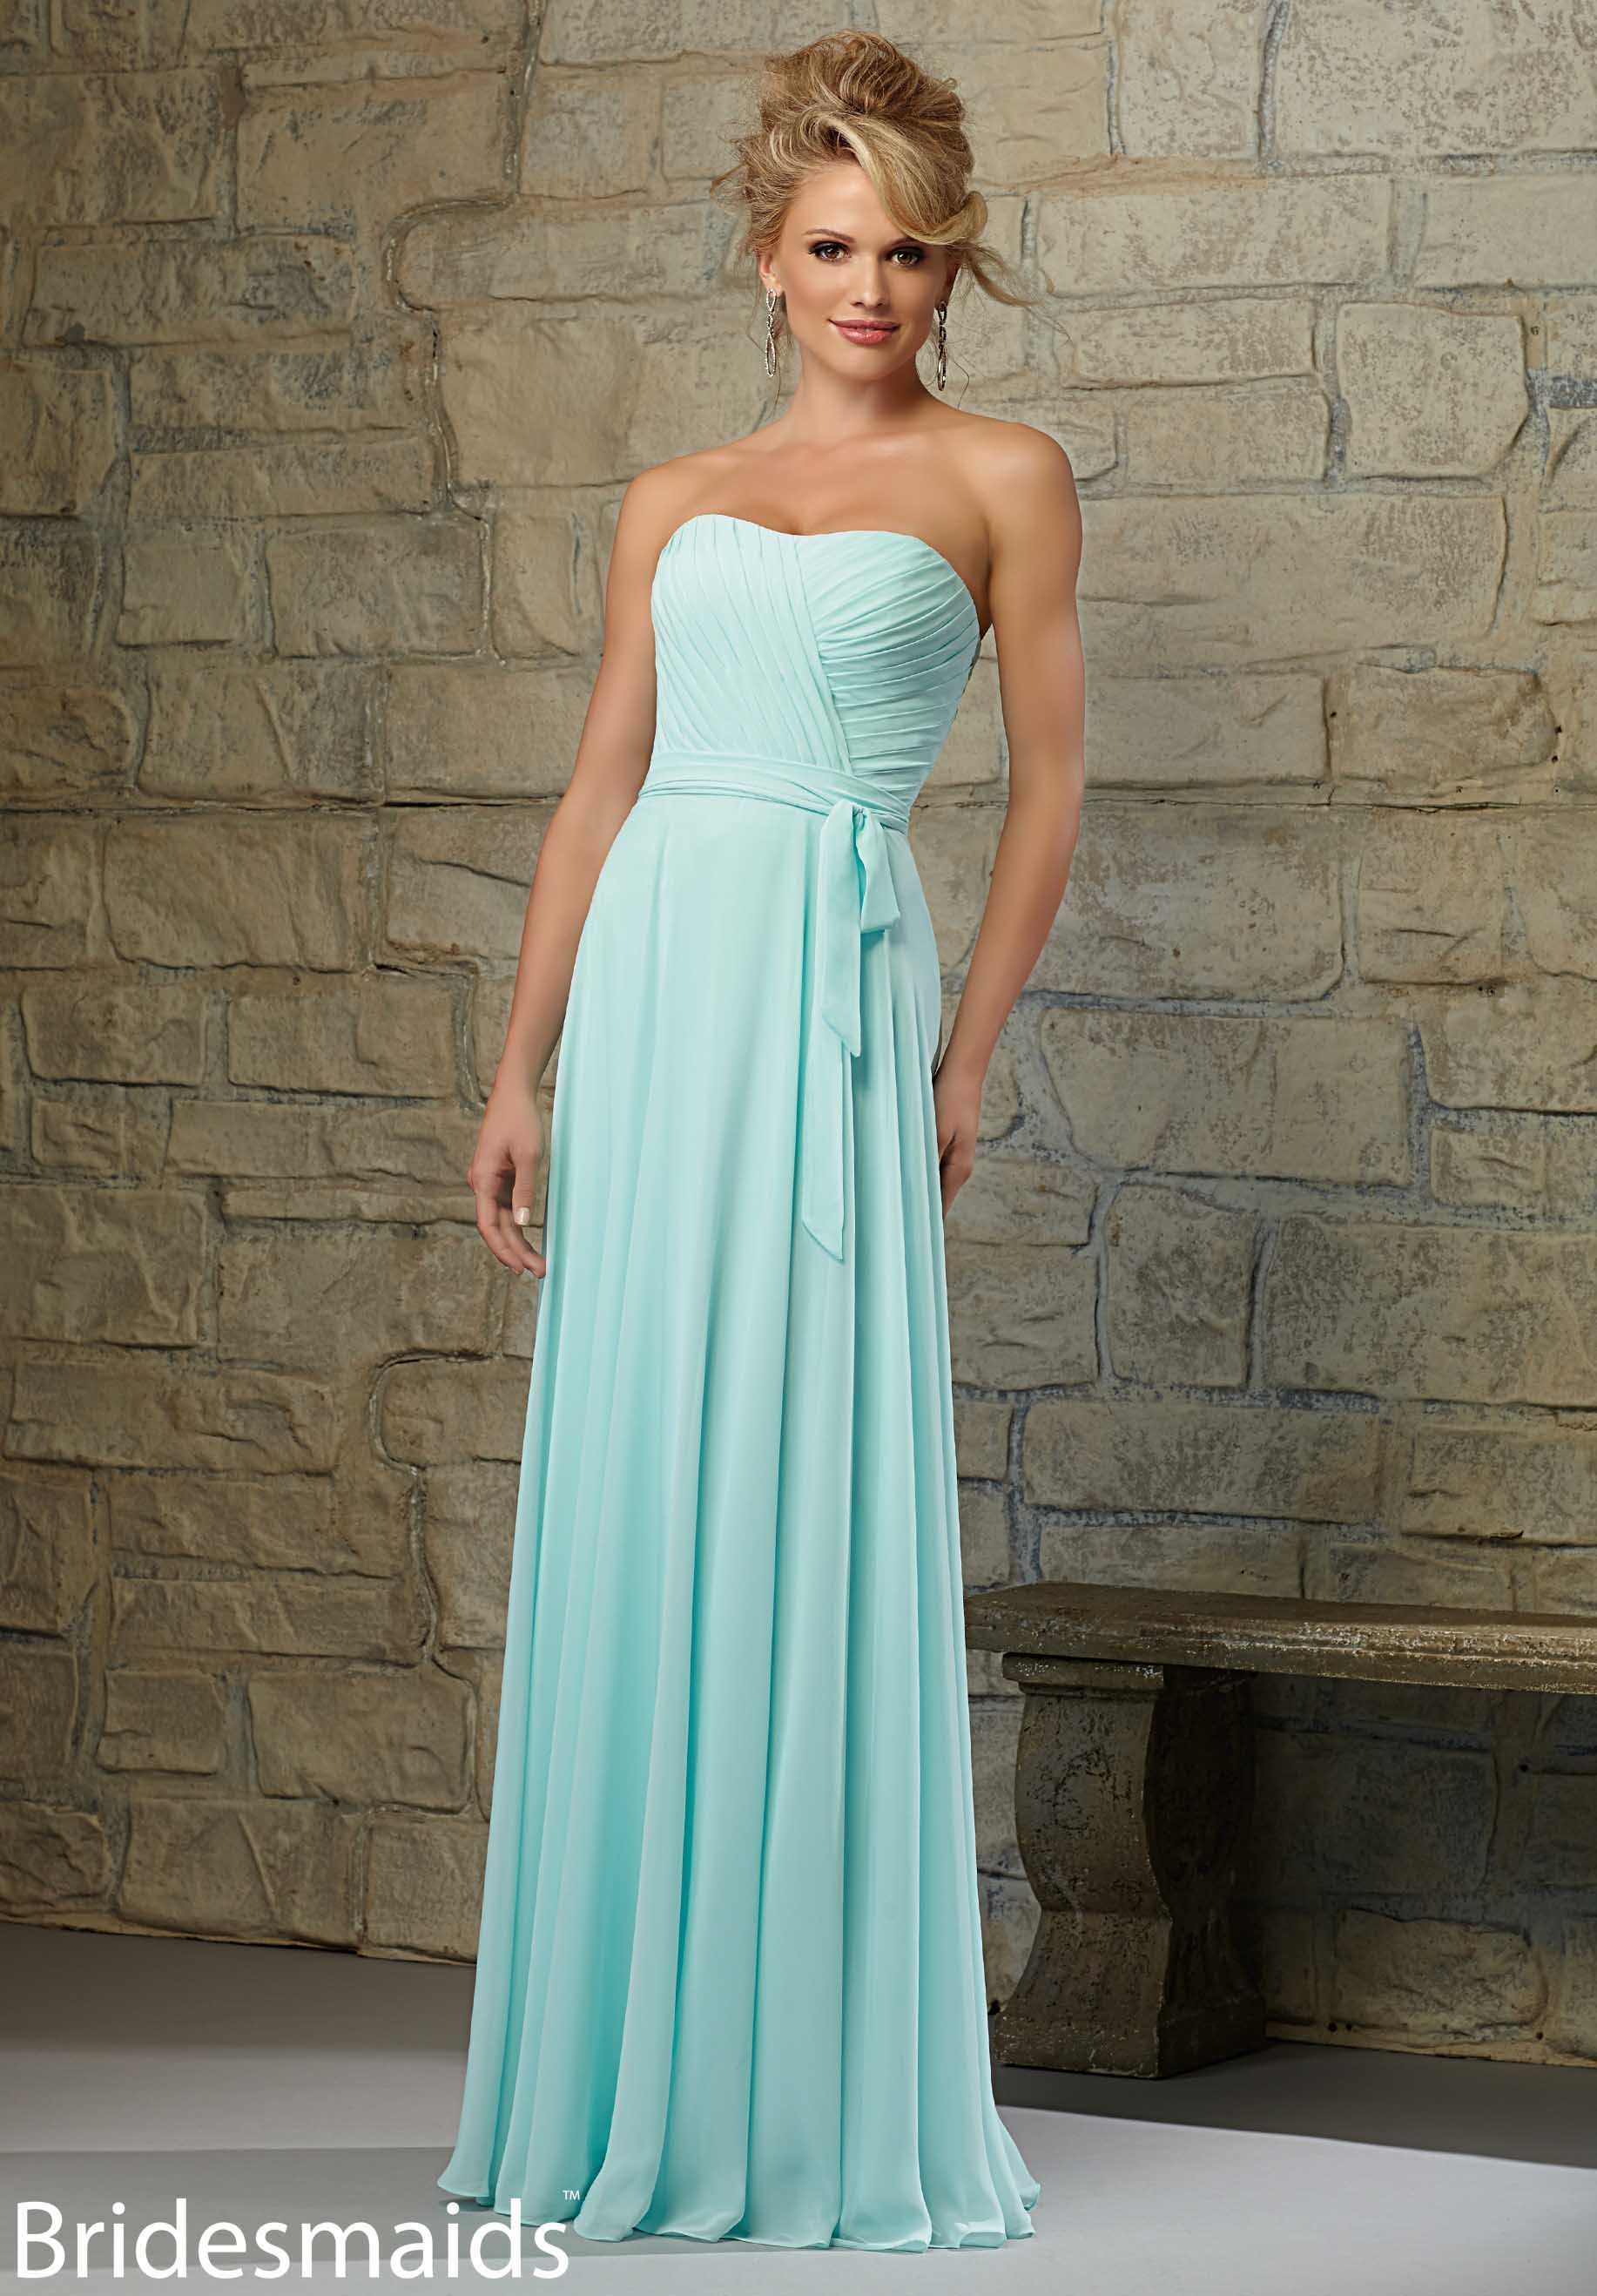 Bridesmaids Dresses Chiffon Matching Tie Sash. Available in All Mori ...